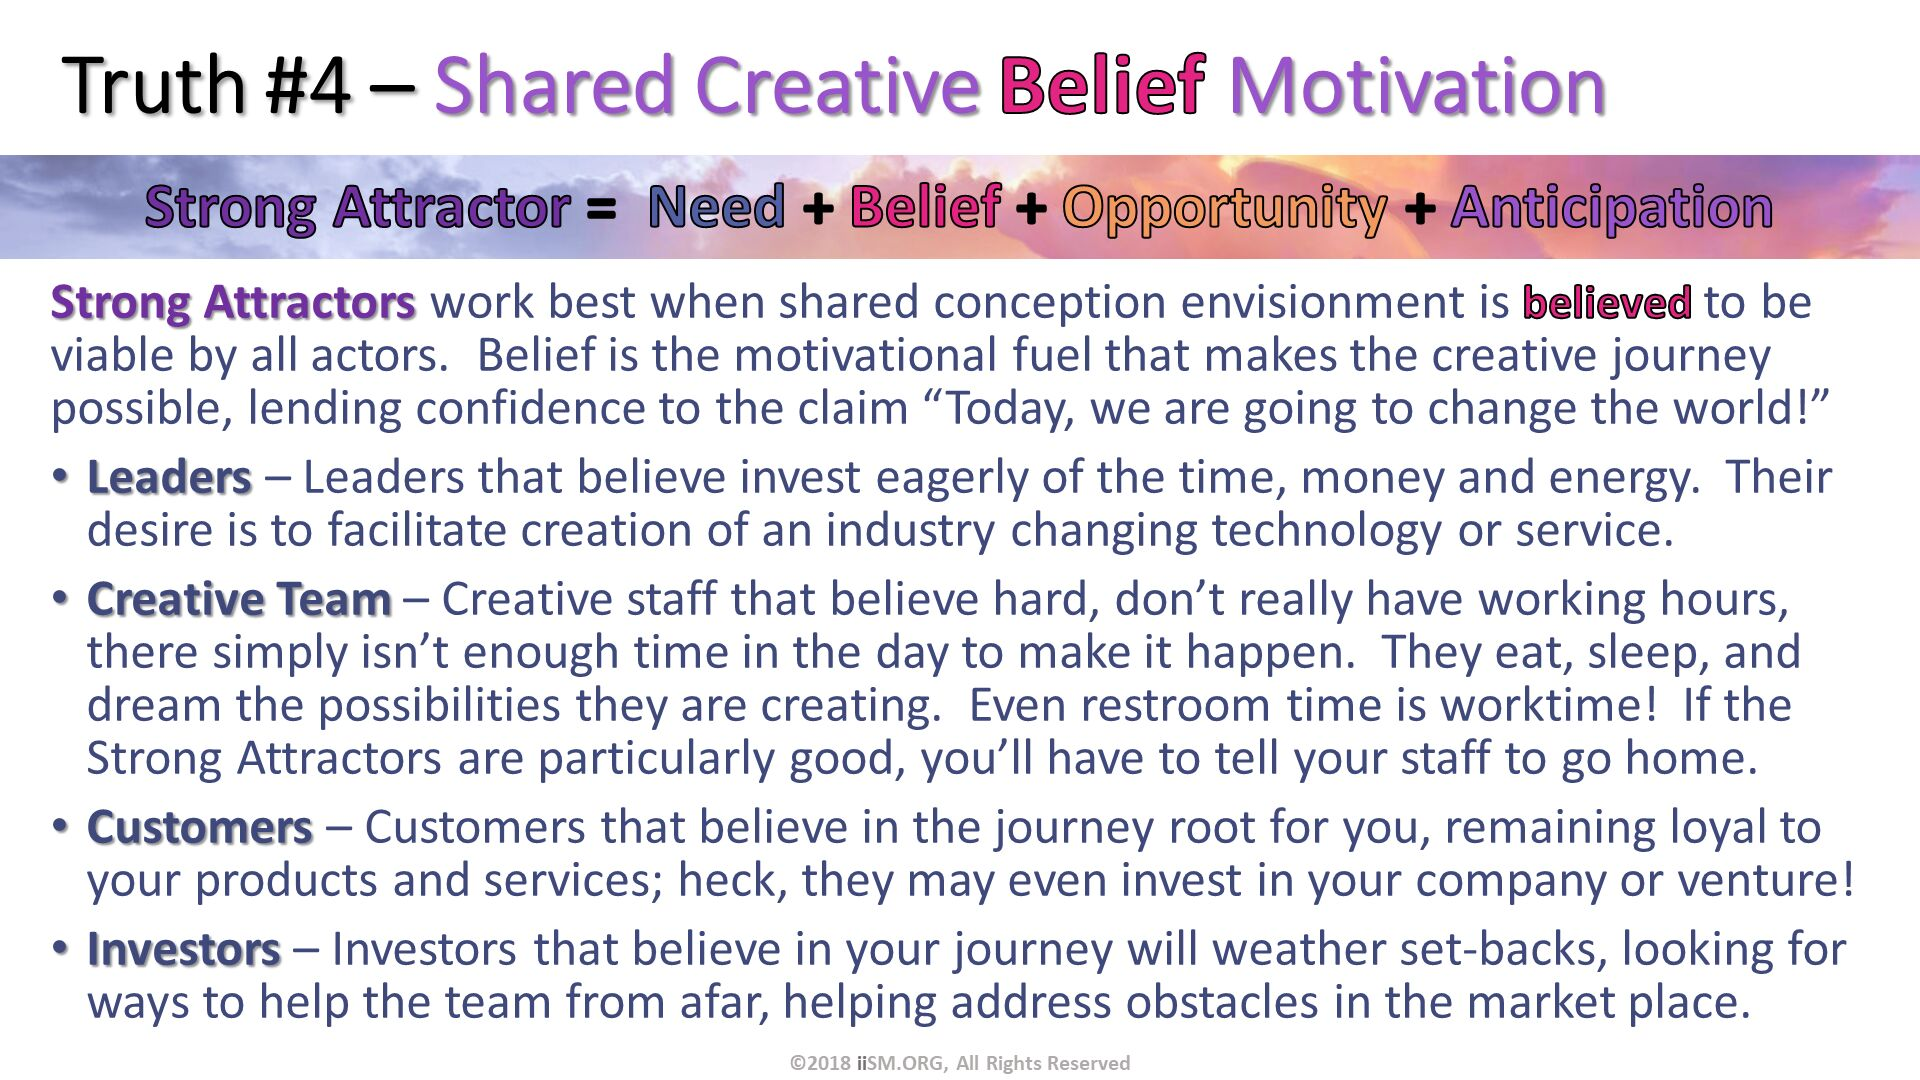 "Truth #4 – Shared Creative Belief Motivation. Strong Attractors work best when shared conception envisionment is believed to be viable by all actors.  Belief is the motivational fuel that makes the creative journey possible, lending confidence to the claim ""Today, we are going to change the world!"" Leaders – Leaders that believe invest eagerly of the time, money and energy.  Their desire is to facilitate creation of an industry changing technology or service. Creative Team – Creative staff that believe hard, don't really have working hours, there simply isn't enough time in the day to make it happen.  They eat, sleep, and dream the possibilities they are creating.  Even restroom time is worktime!  If the Strong Attractors are particularly good, you'll have to tell your staff to go home. Customers – Customers that believe in the journey root for you, remaining loyal to your products and services; heck, they may even invest in your company or venture! Investors – Investors that believe in your journey will weather set-backs, looking for ways to help the team from afar, helping address obstacles in the market place.  . ©2018 iiSM.ORG, All Rights Reserved."